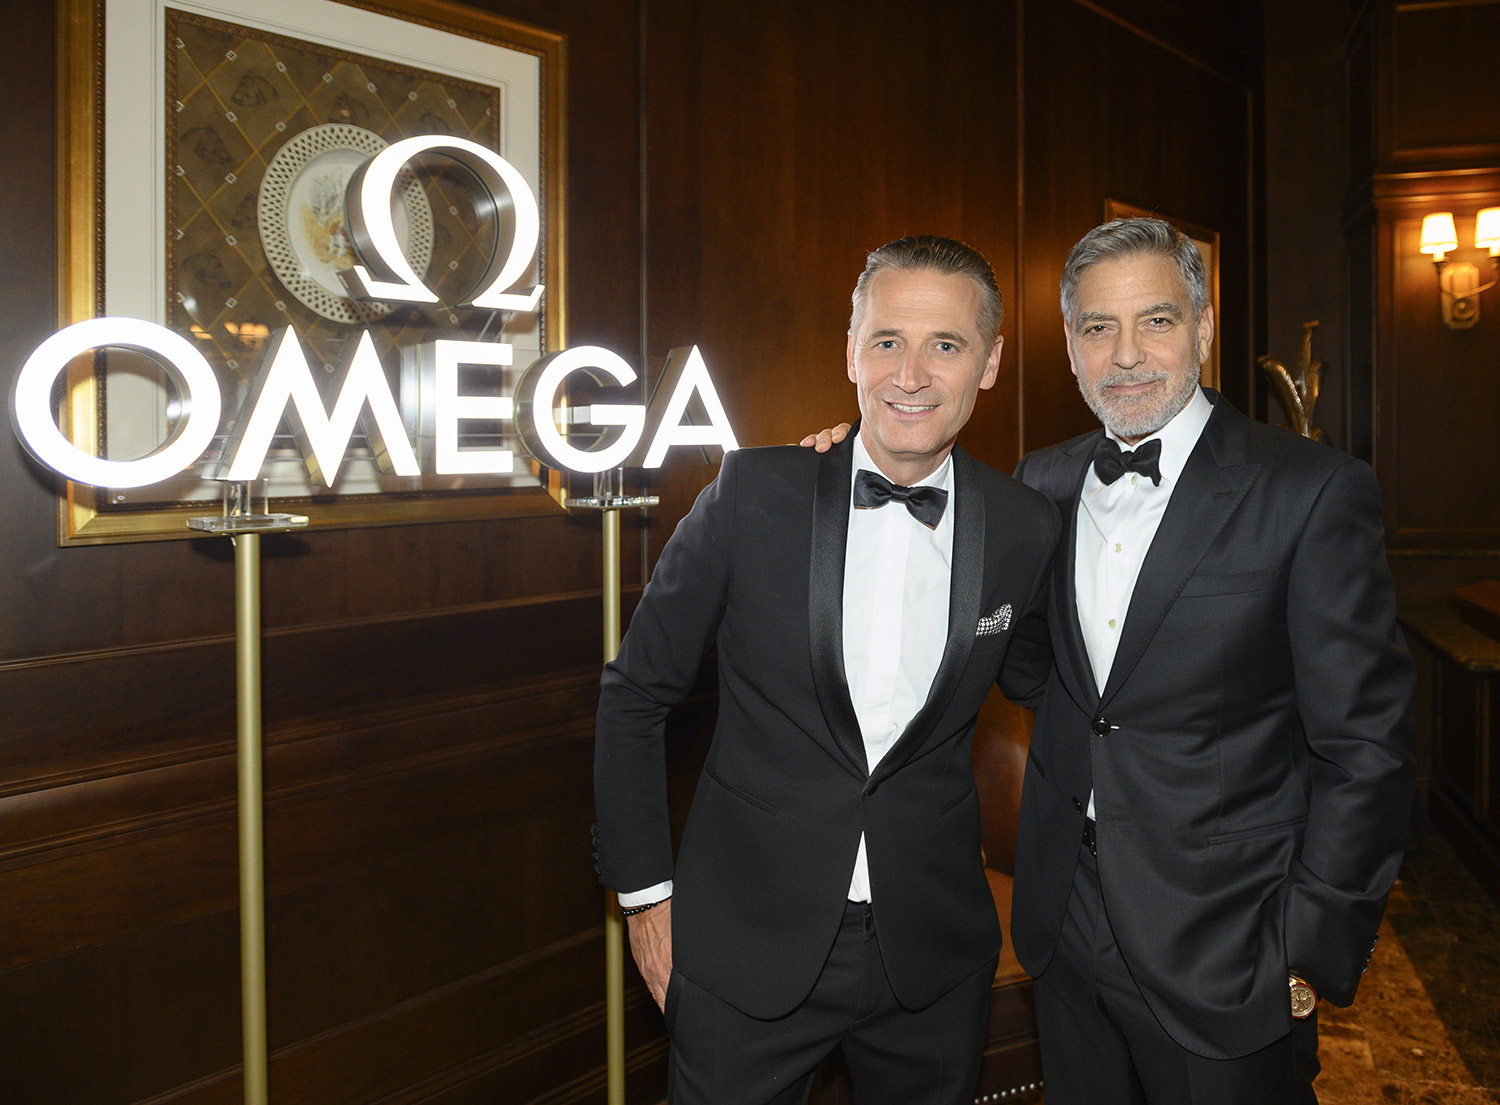 President and CEO of OMEGA Raynald Aeschlimann George Clooney